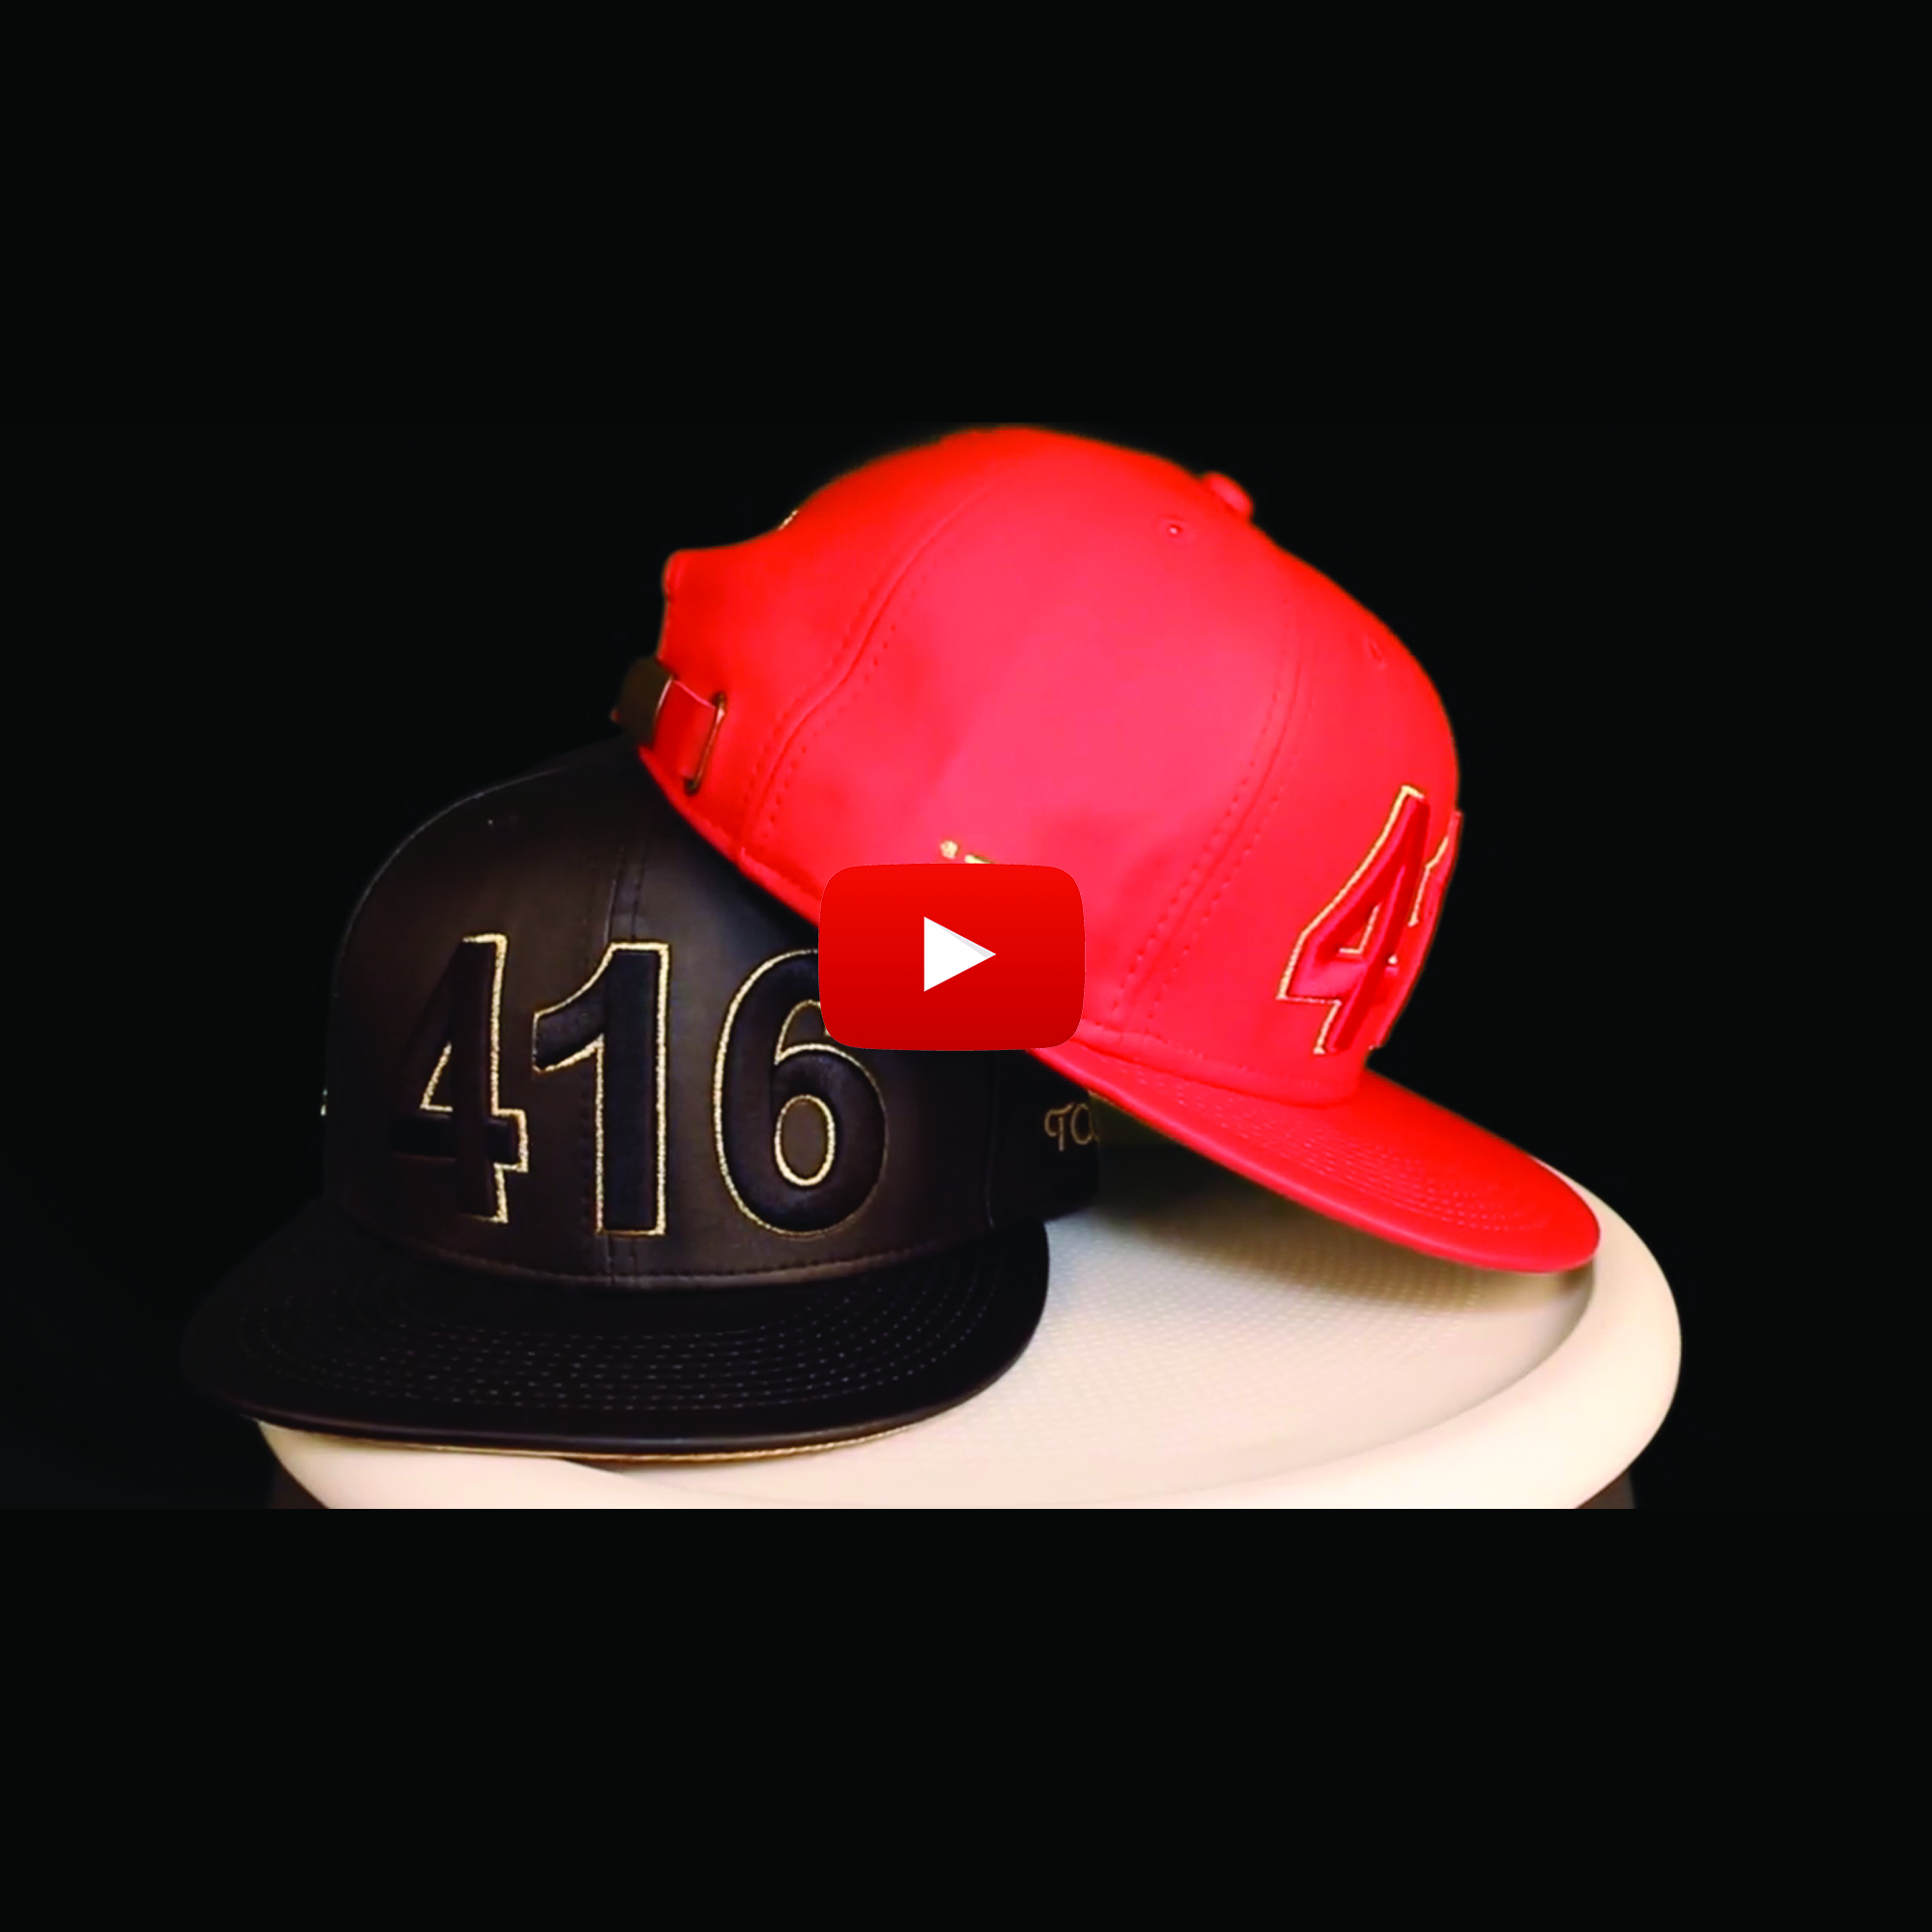 The Cap Guys - Inspired Exclusives - 416 Toronto - Commercial Teaser